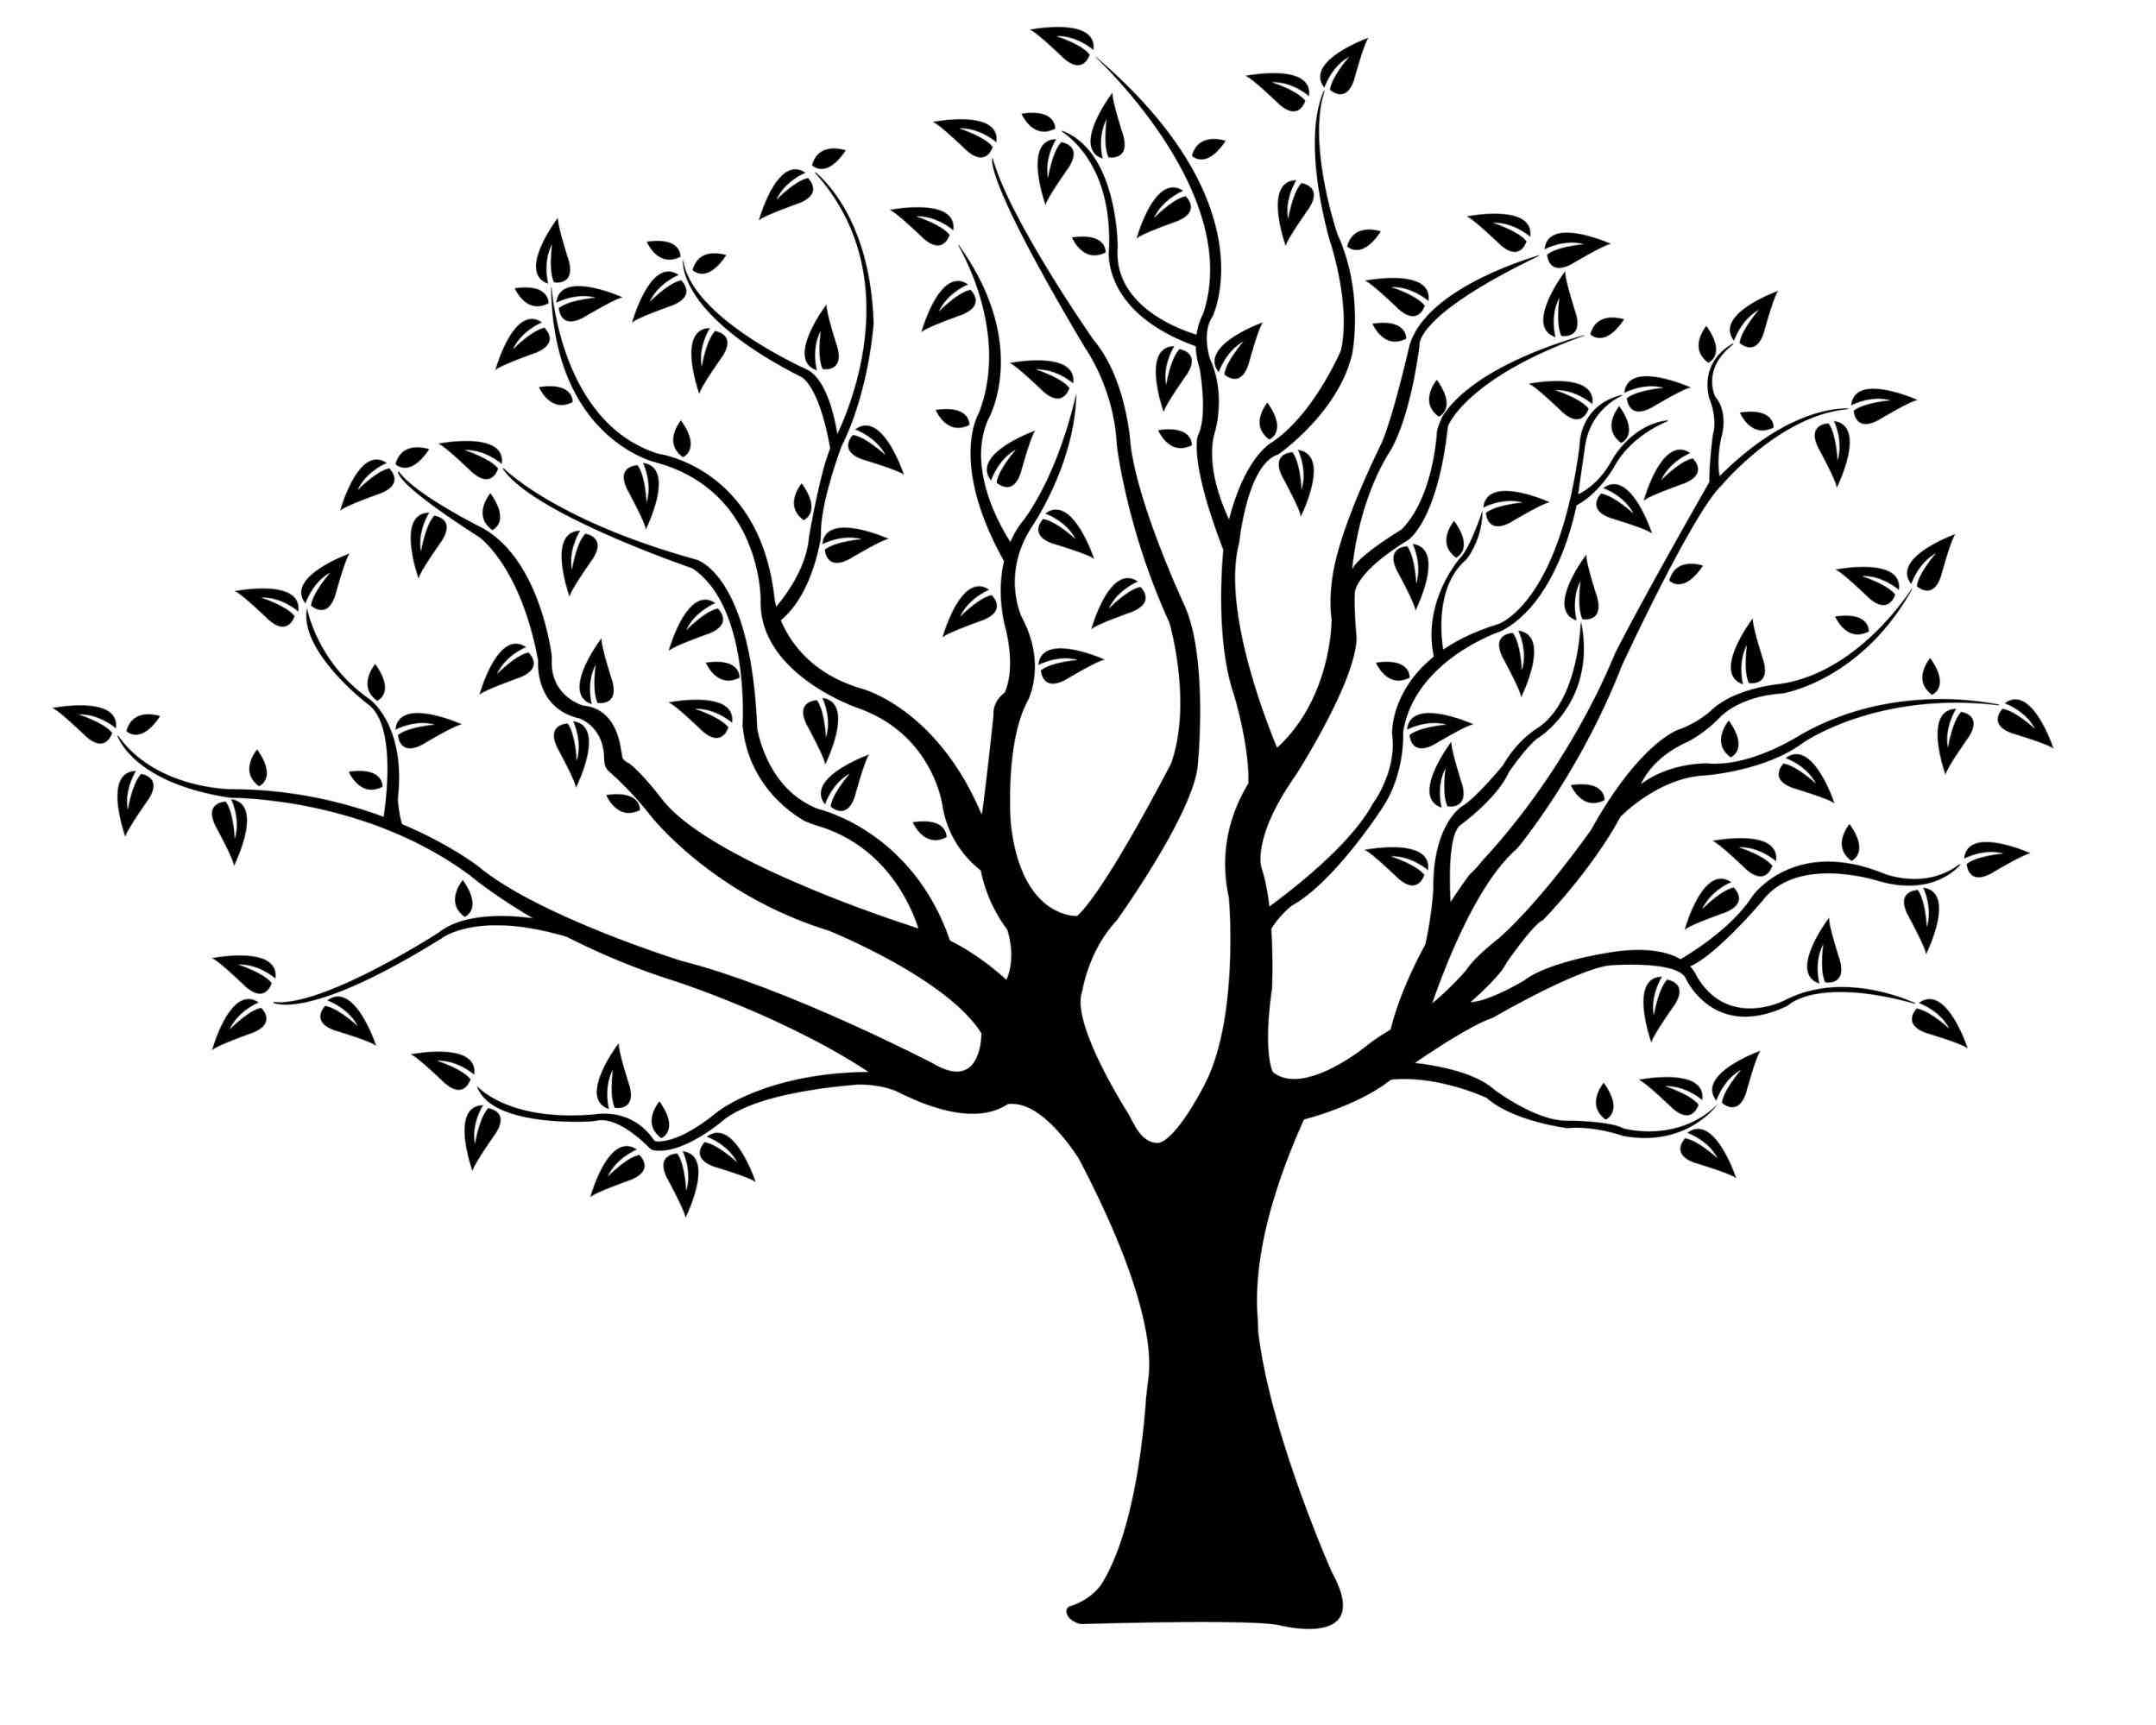 Simple Tree Line Drawing at GetDrawings.com.